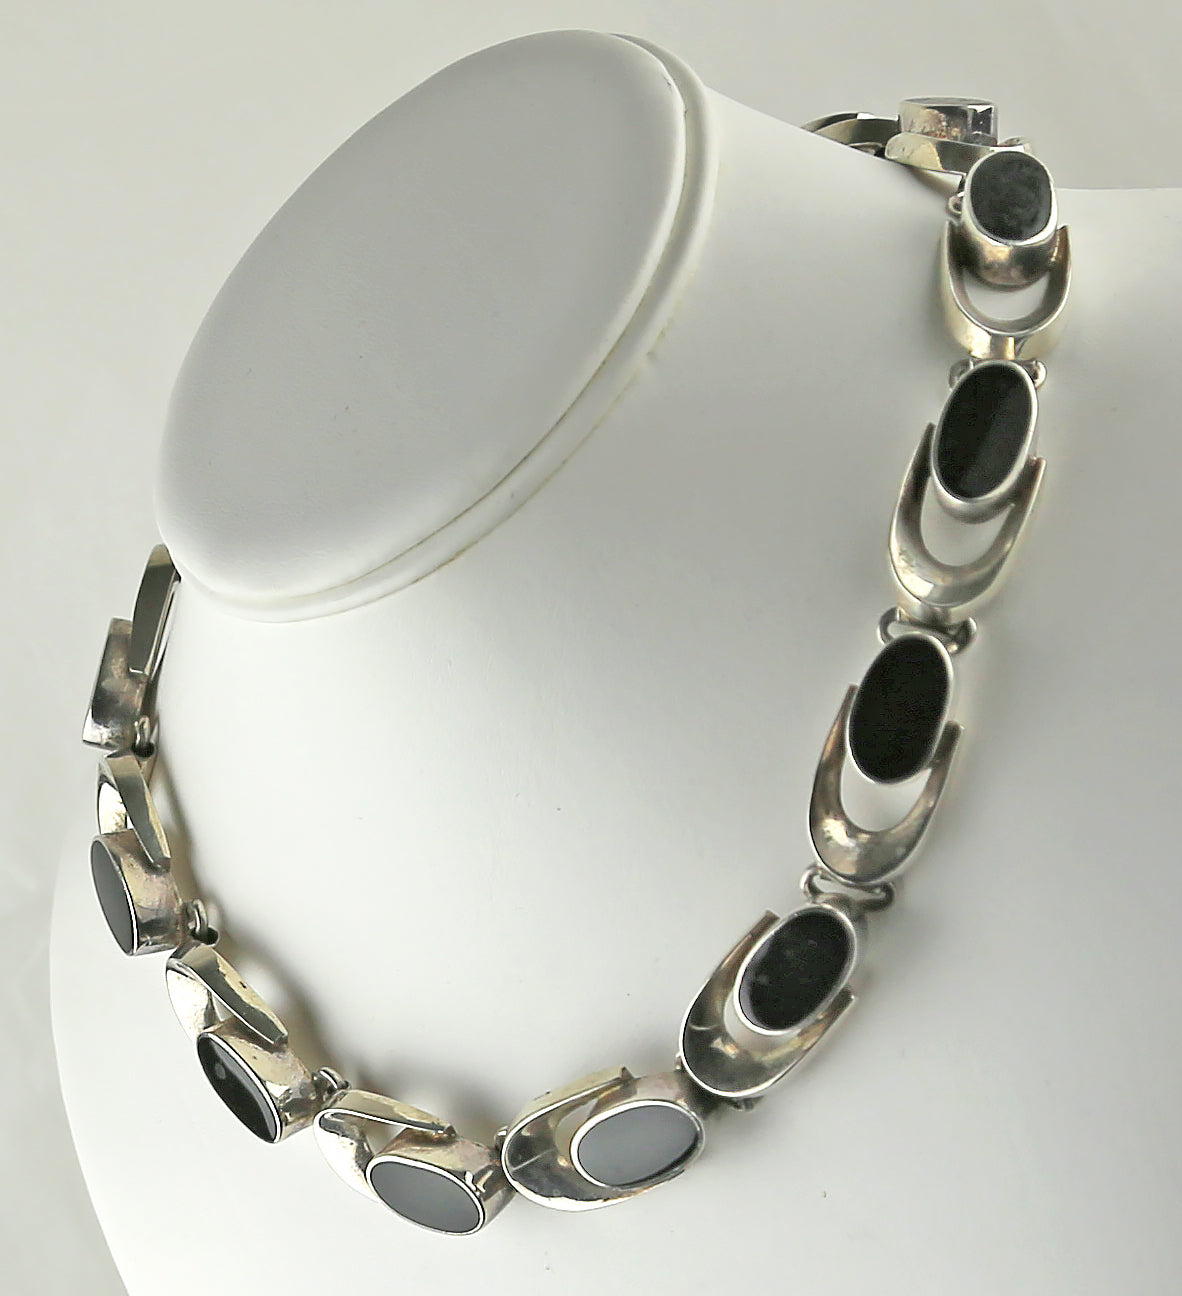 Vintage Mexican Sterling Silver and Onyx Necklace